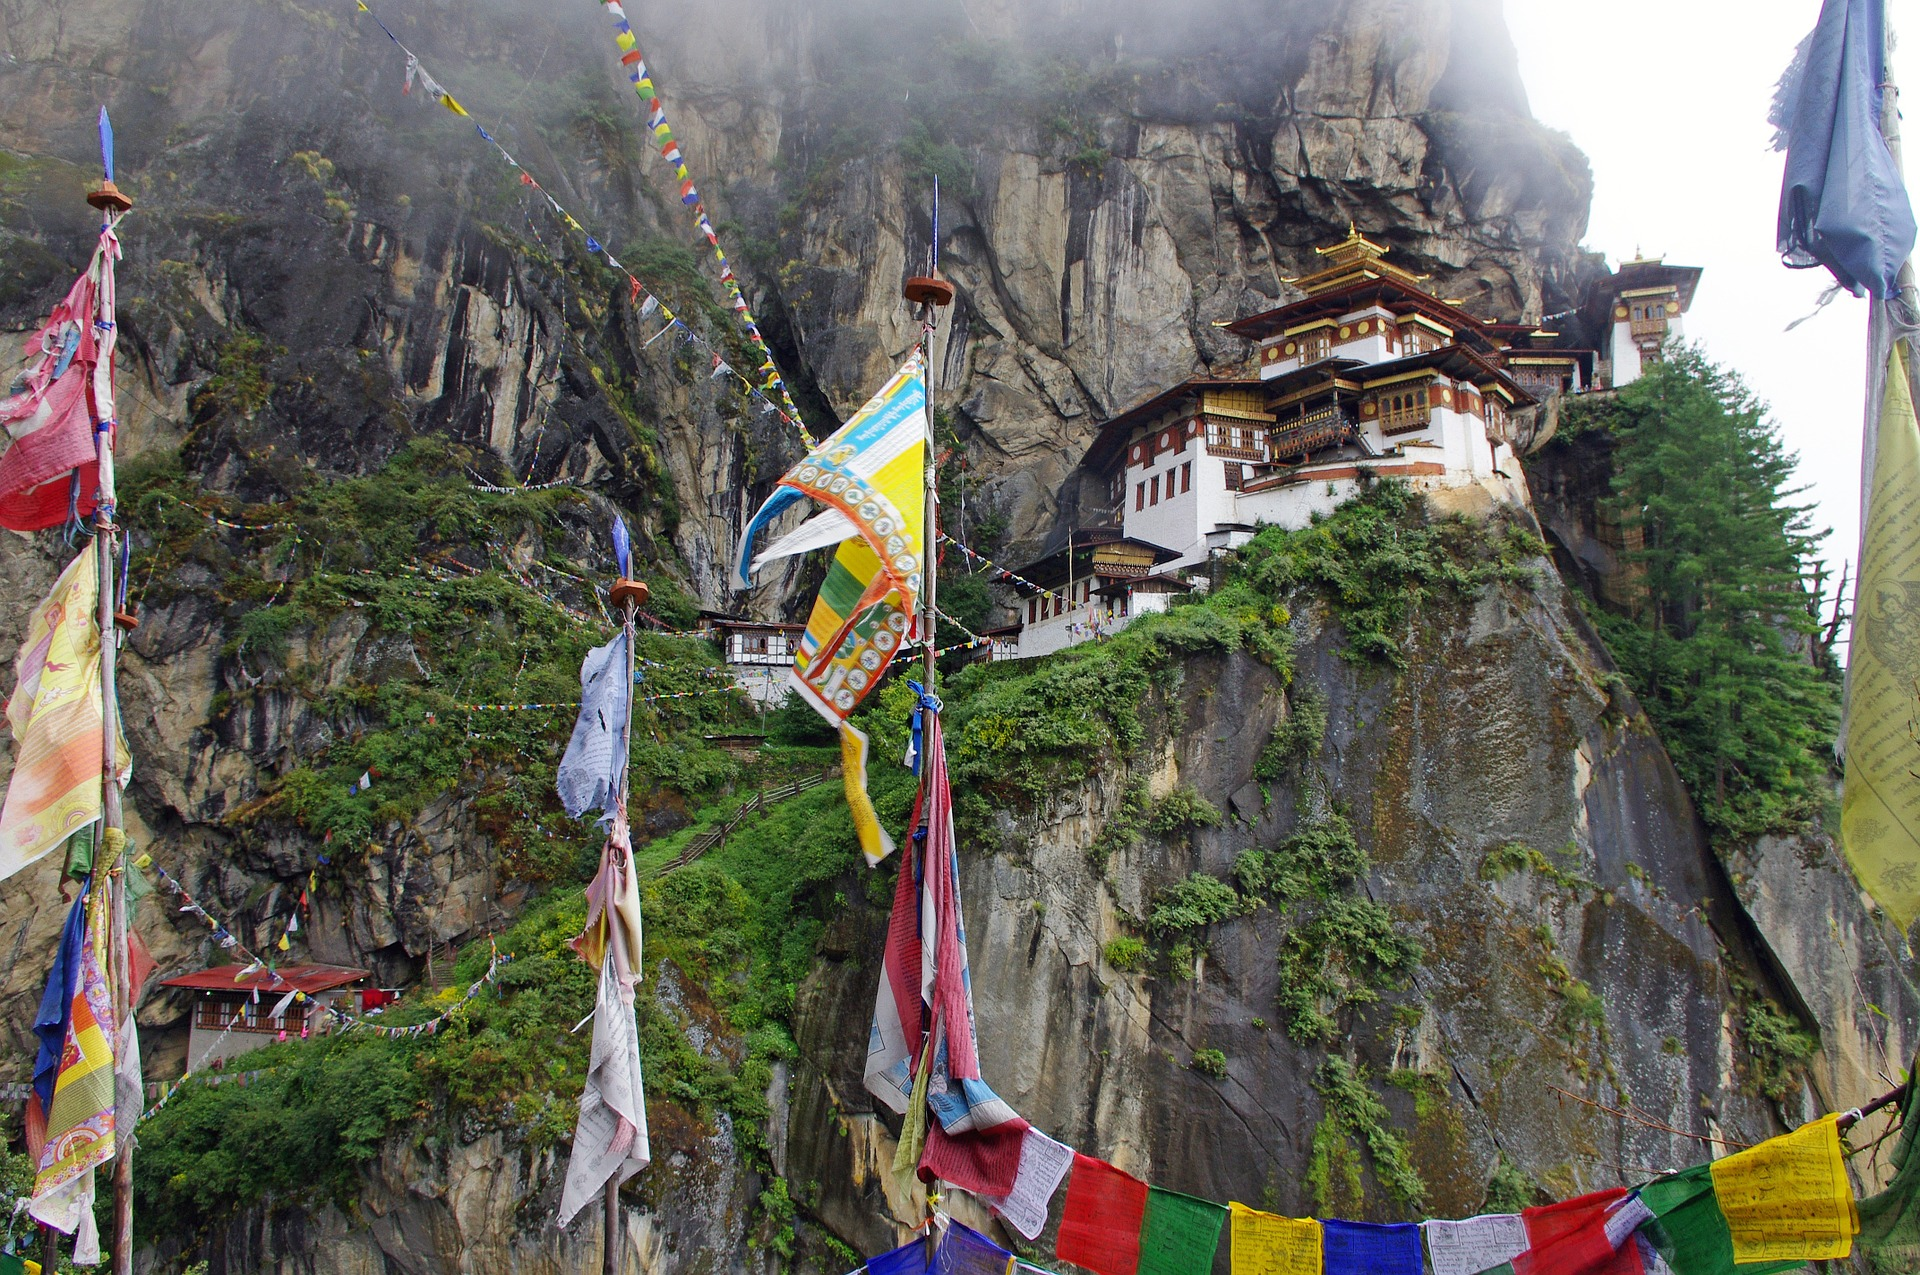 bhutan temple in the mountains